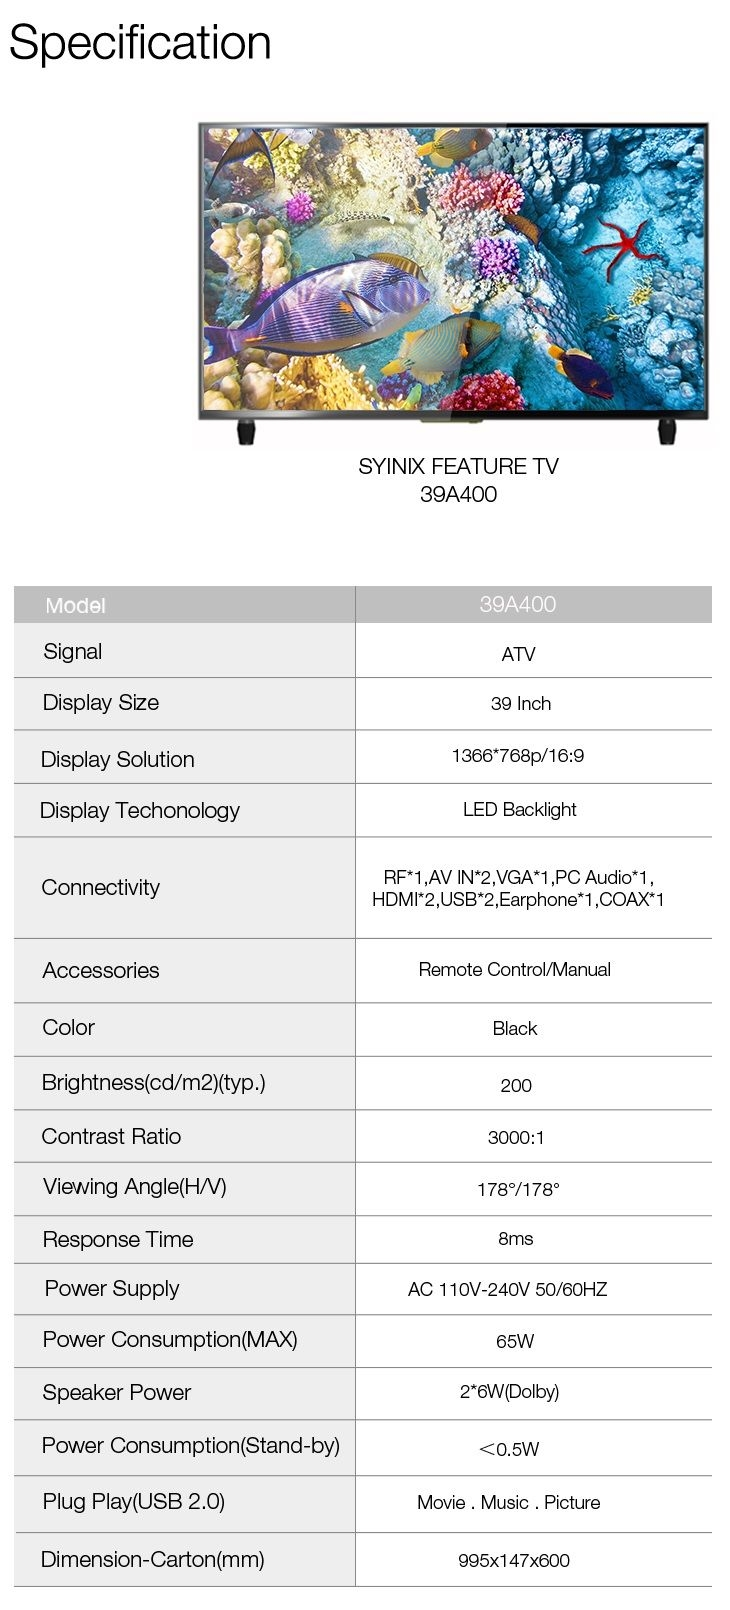 Syinix 39A400 LED TV specs affordable 39 inch tv